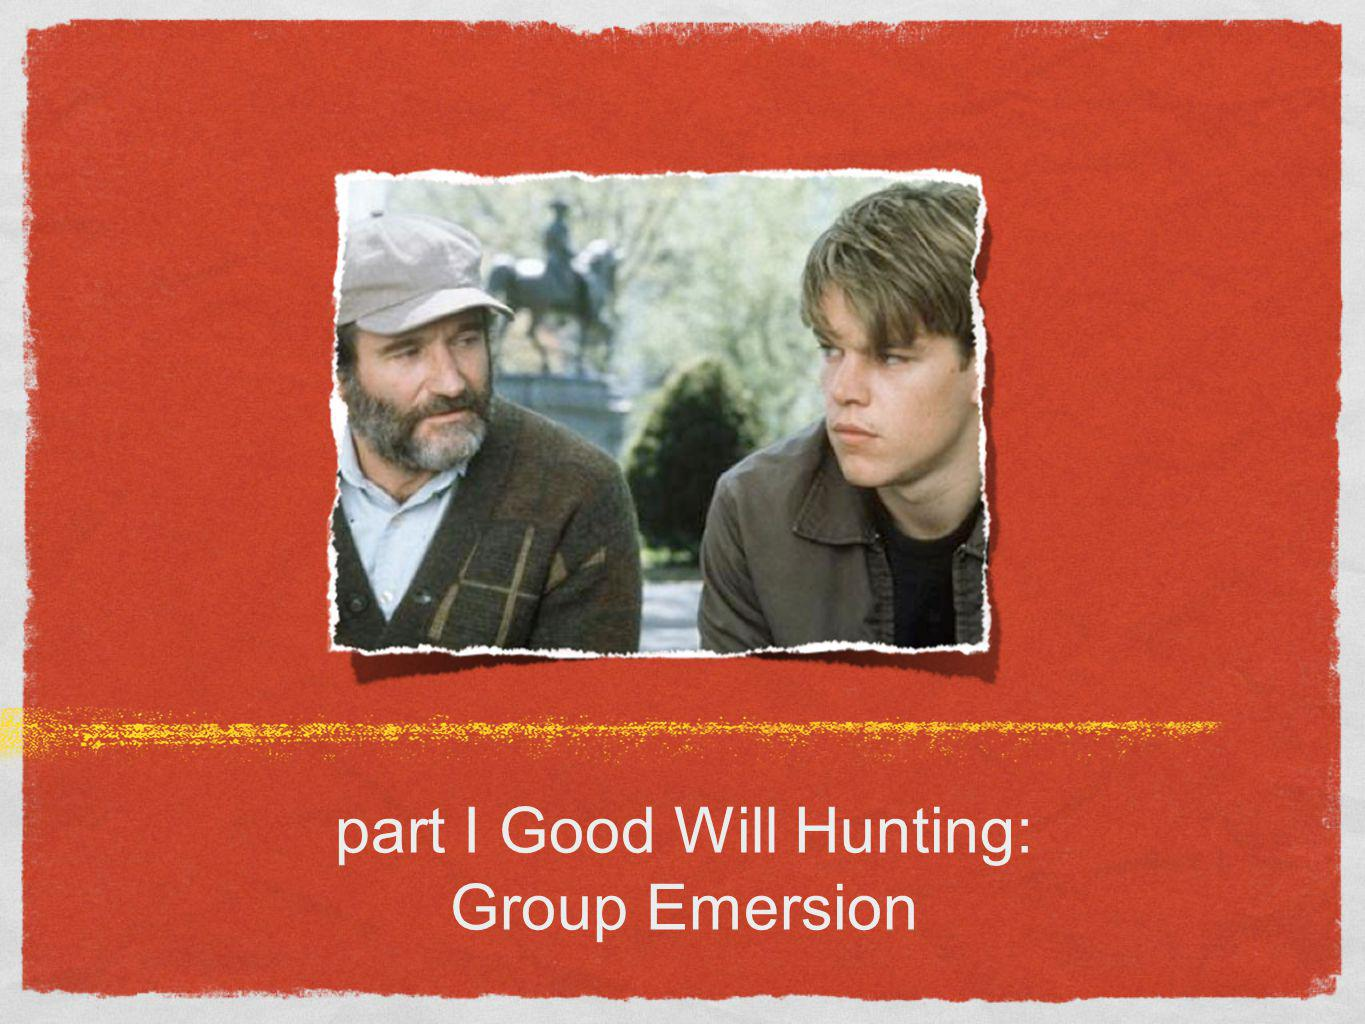 part I Good Will Hunting: Group Emersion